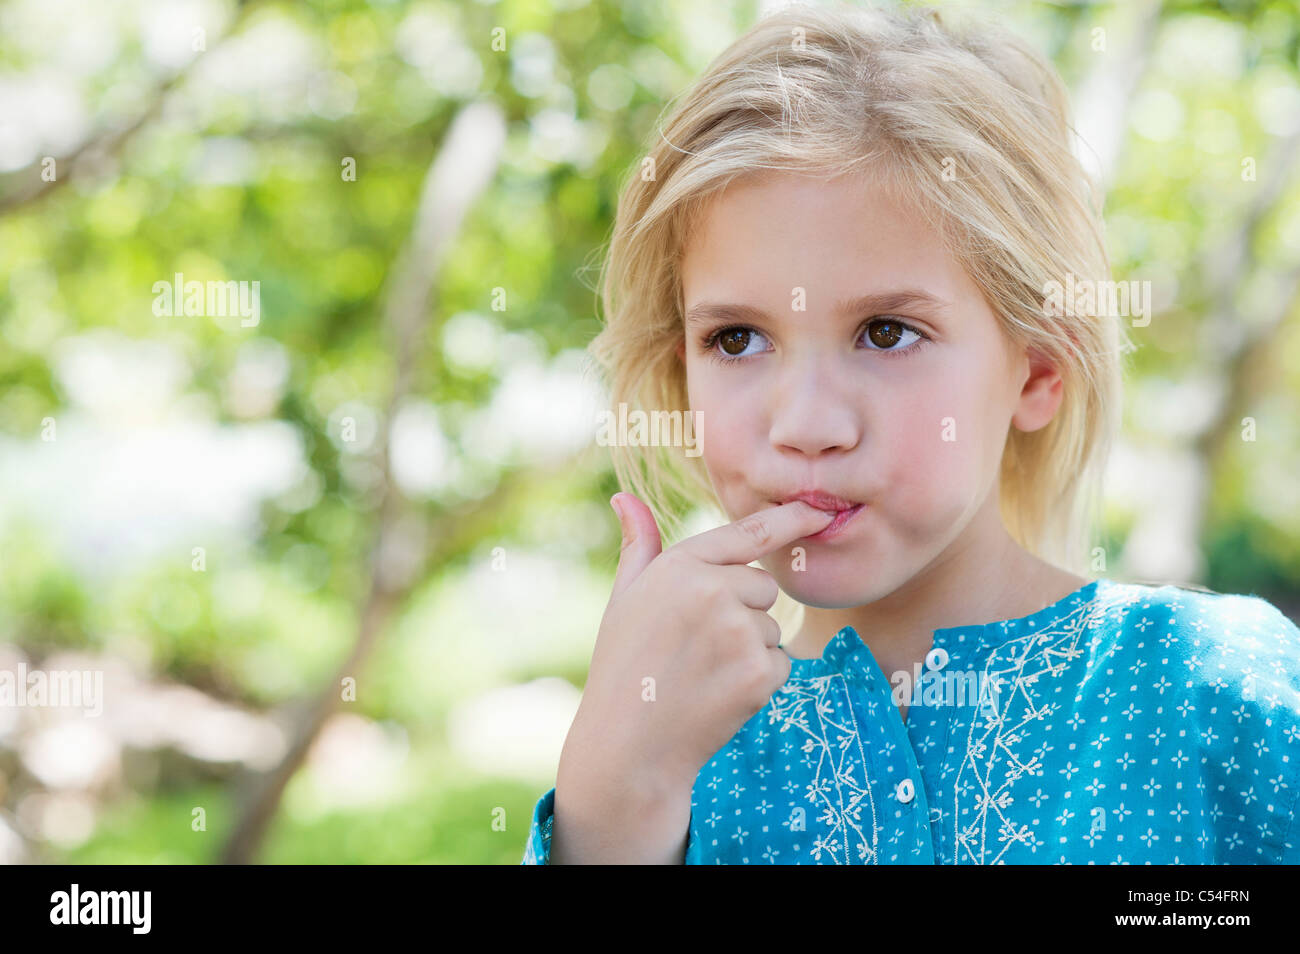 Close-up of a cute girl eating something outdoors - Stock Image